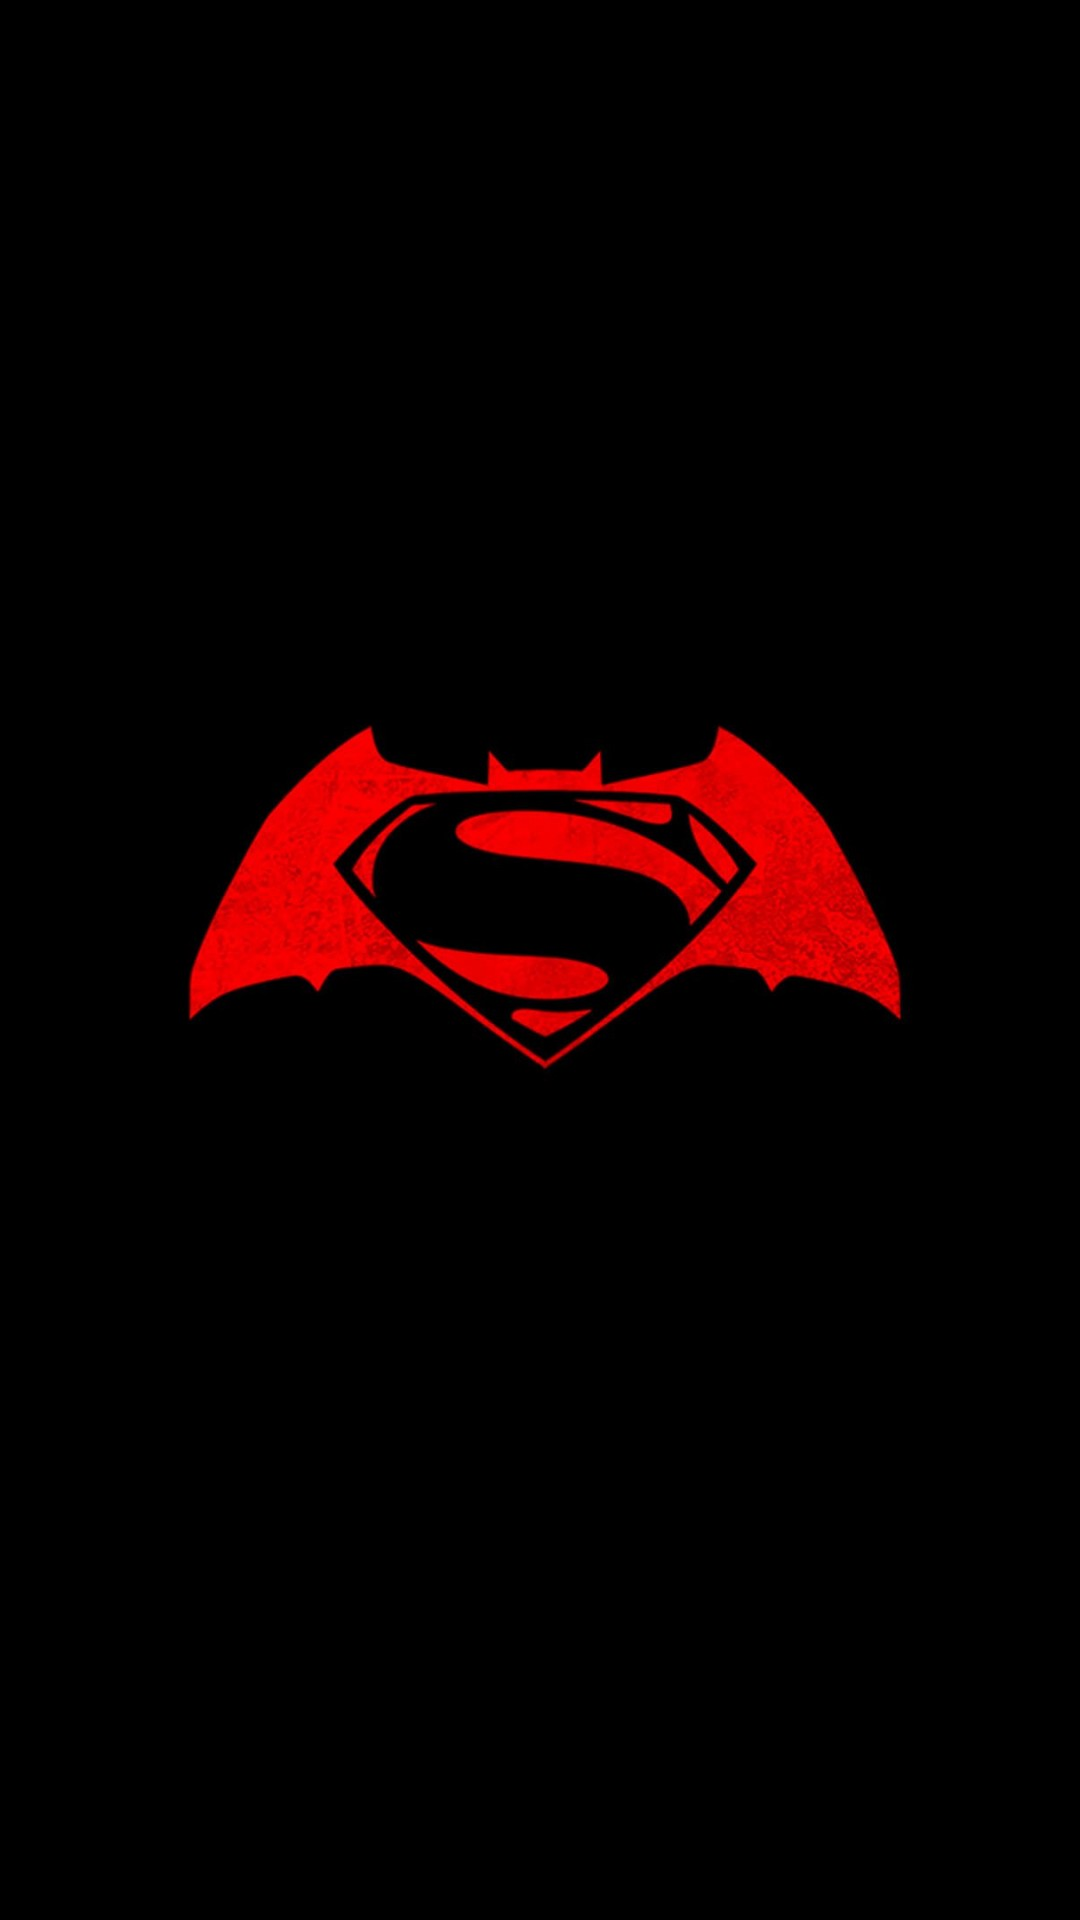 Batman v Superman logo Wallpaper for SONY Xperia Z3